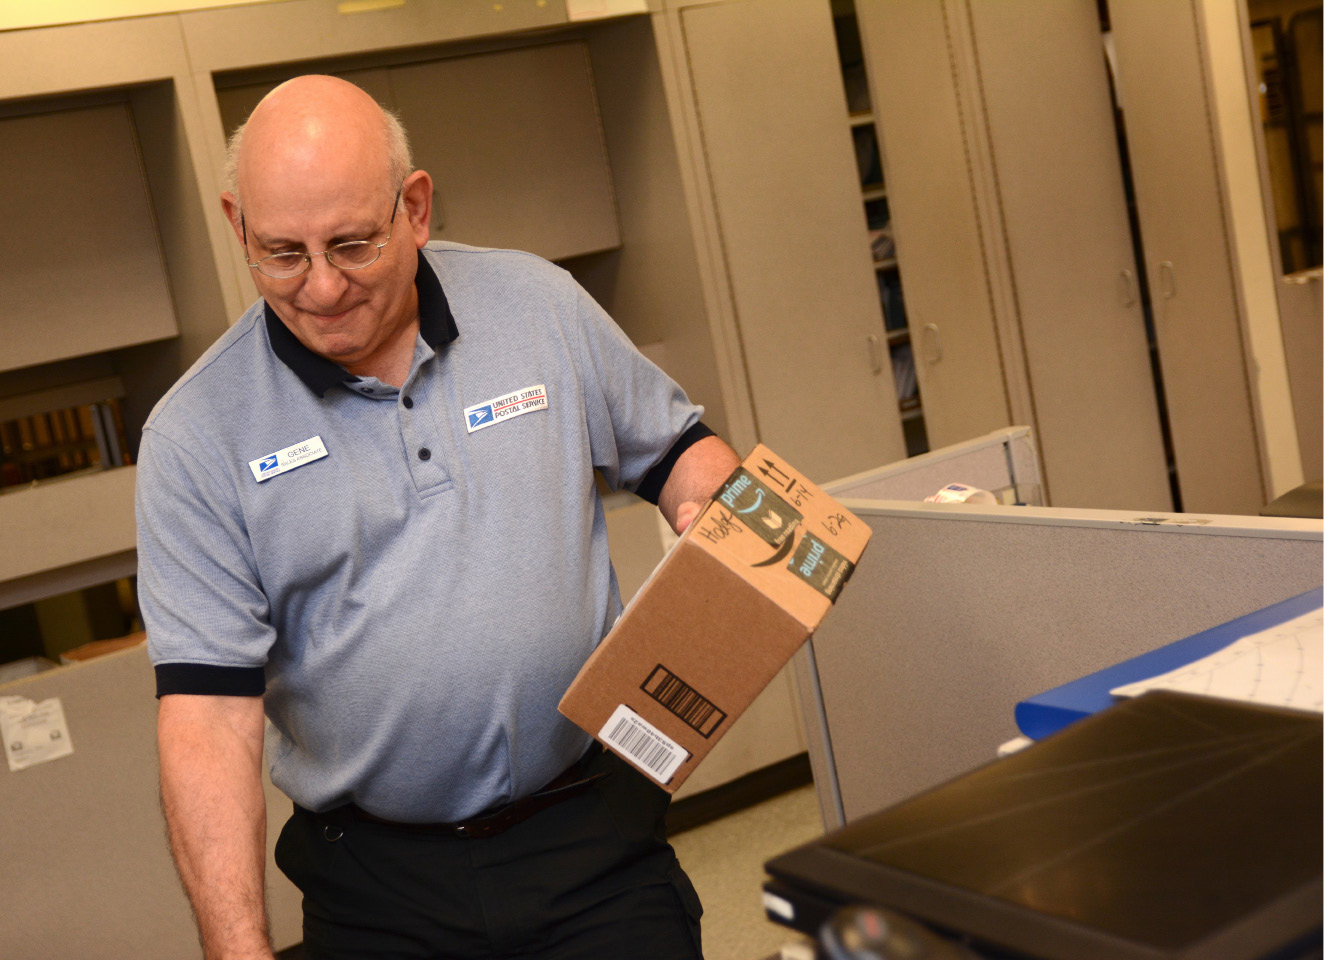 Meriden United States Postal Service clerk Gene Kirstens carries a package at the post office on Thursday, June 15, 2017. | Bryan Lipiner, Record-Journal